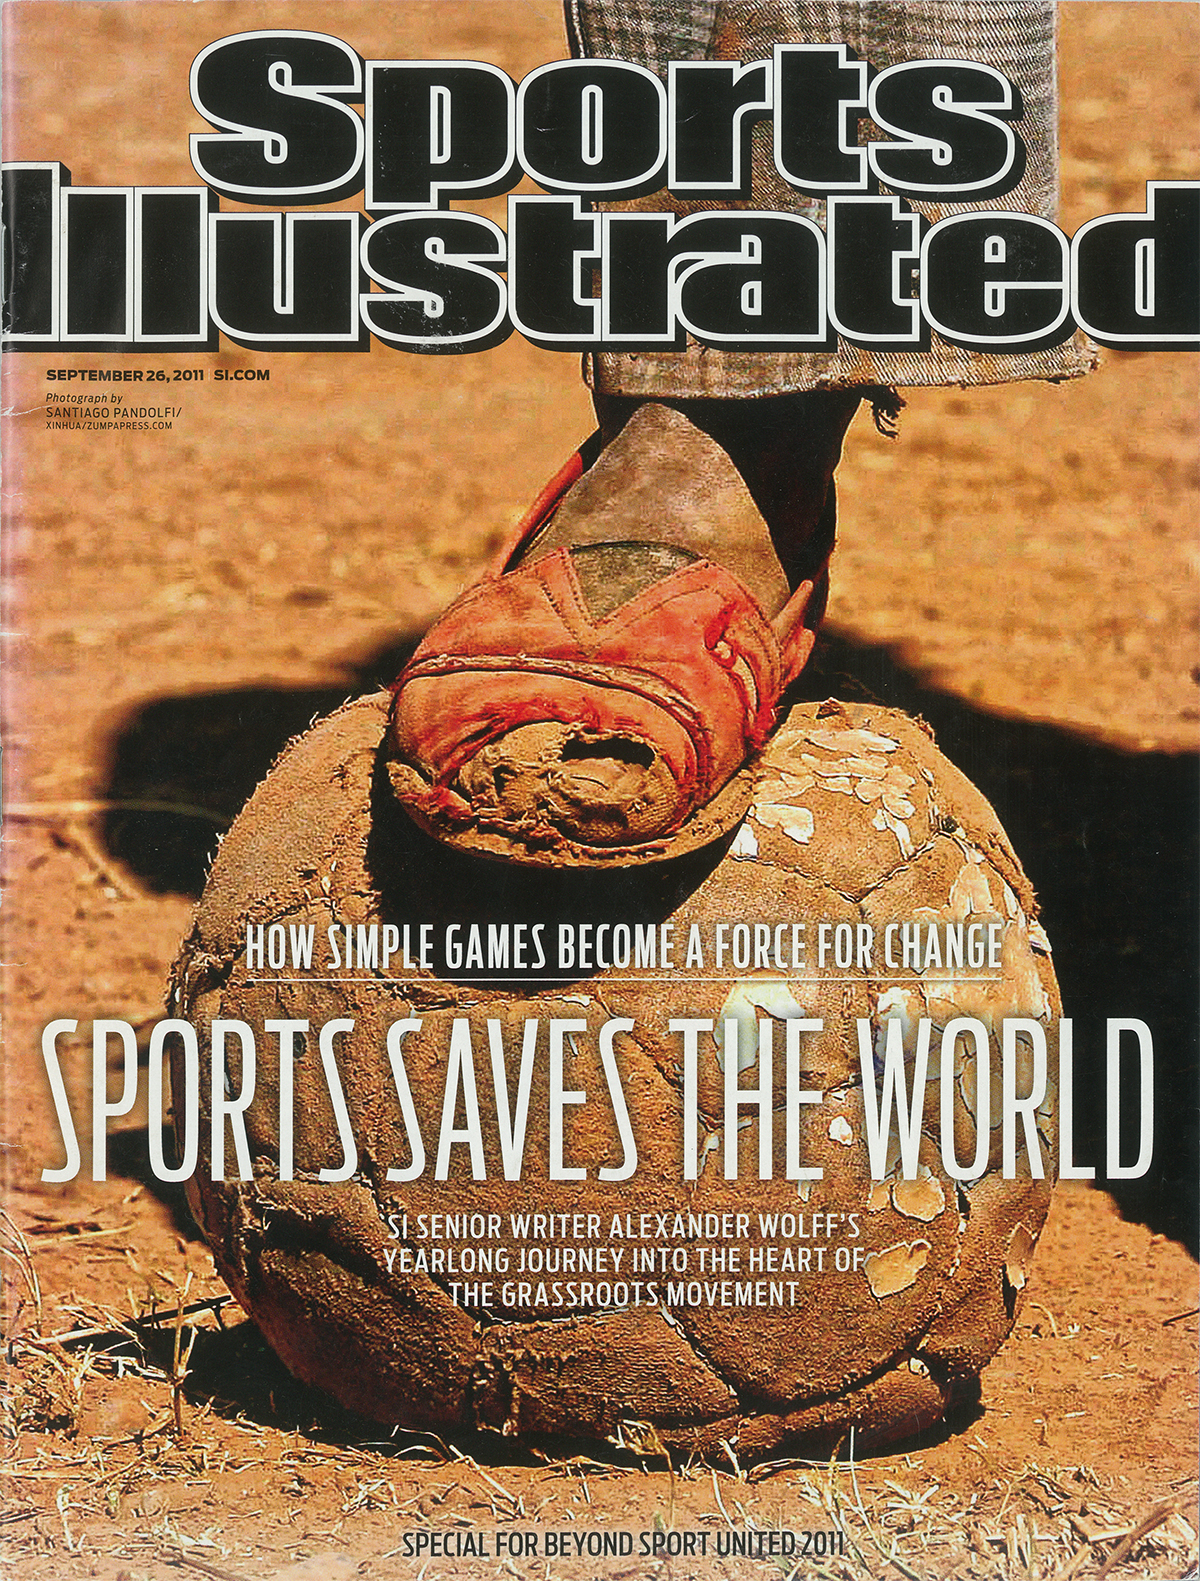 Sports Saves the World